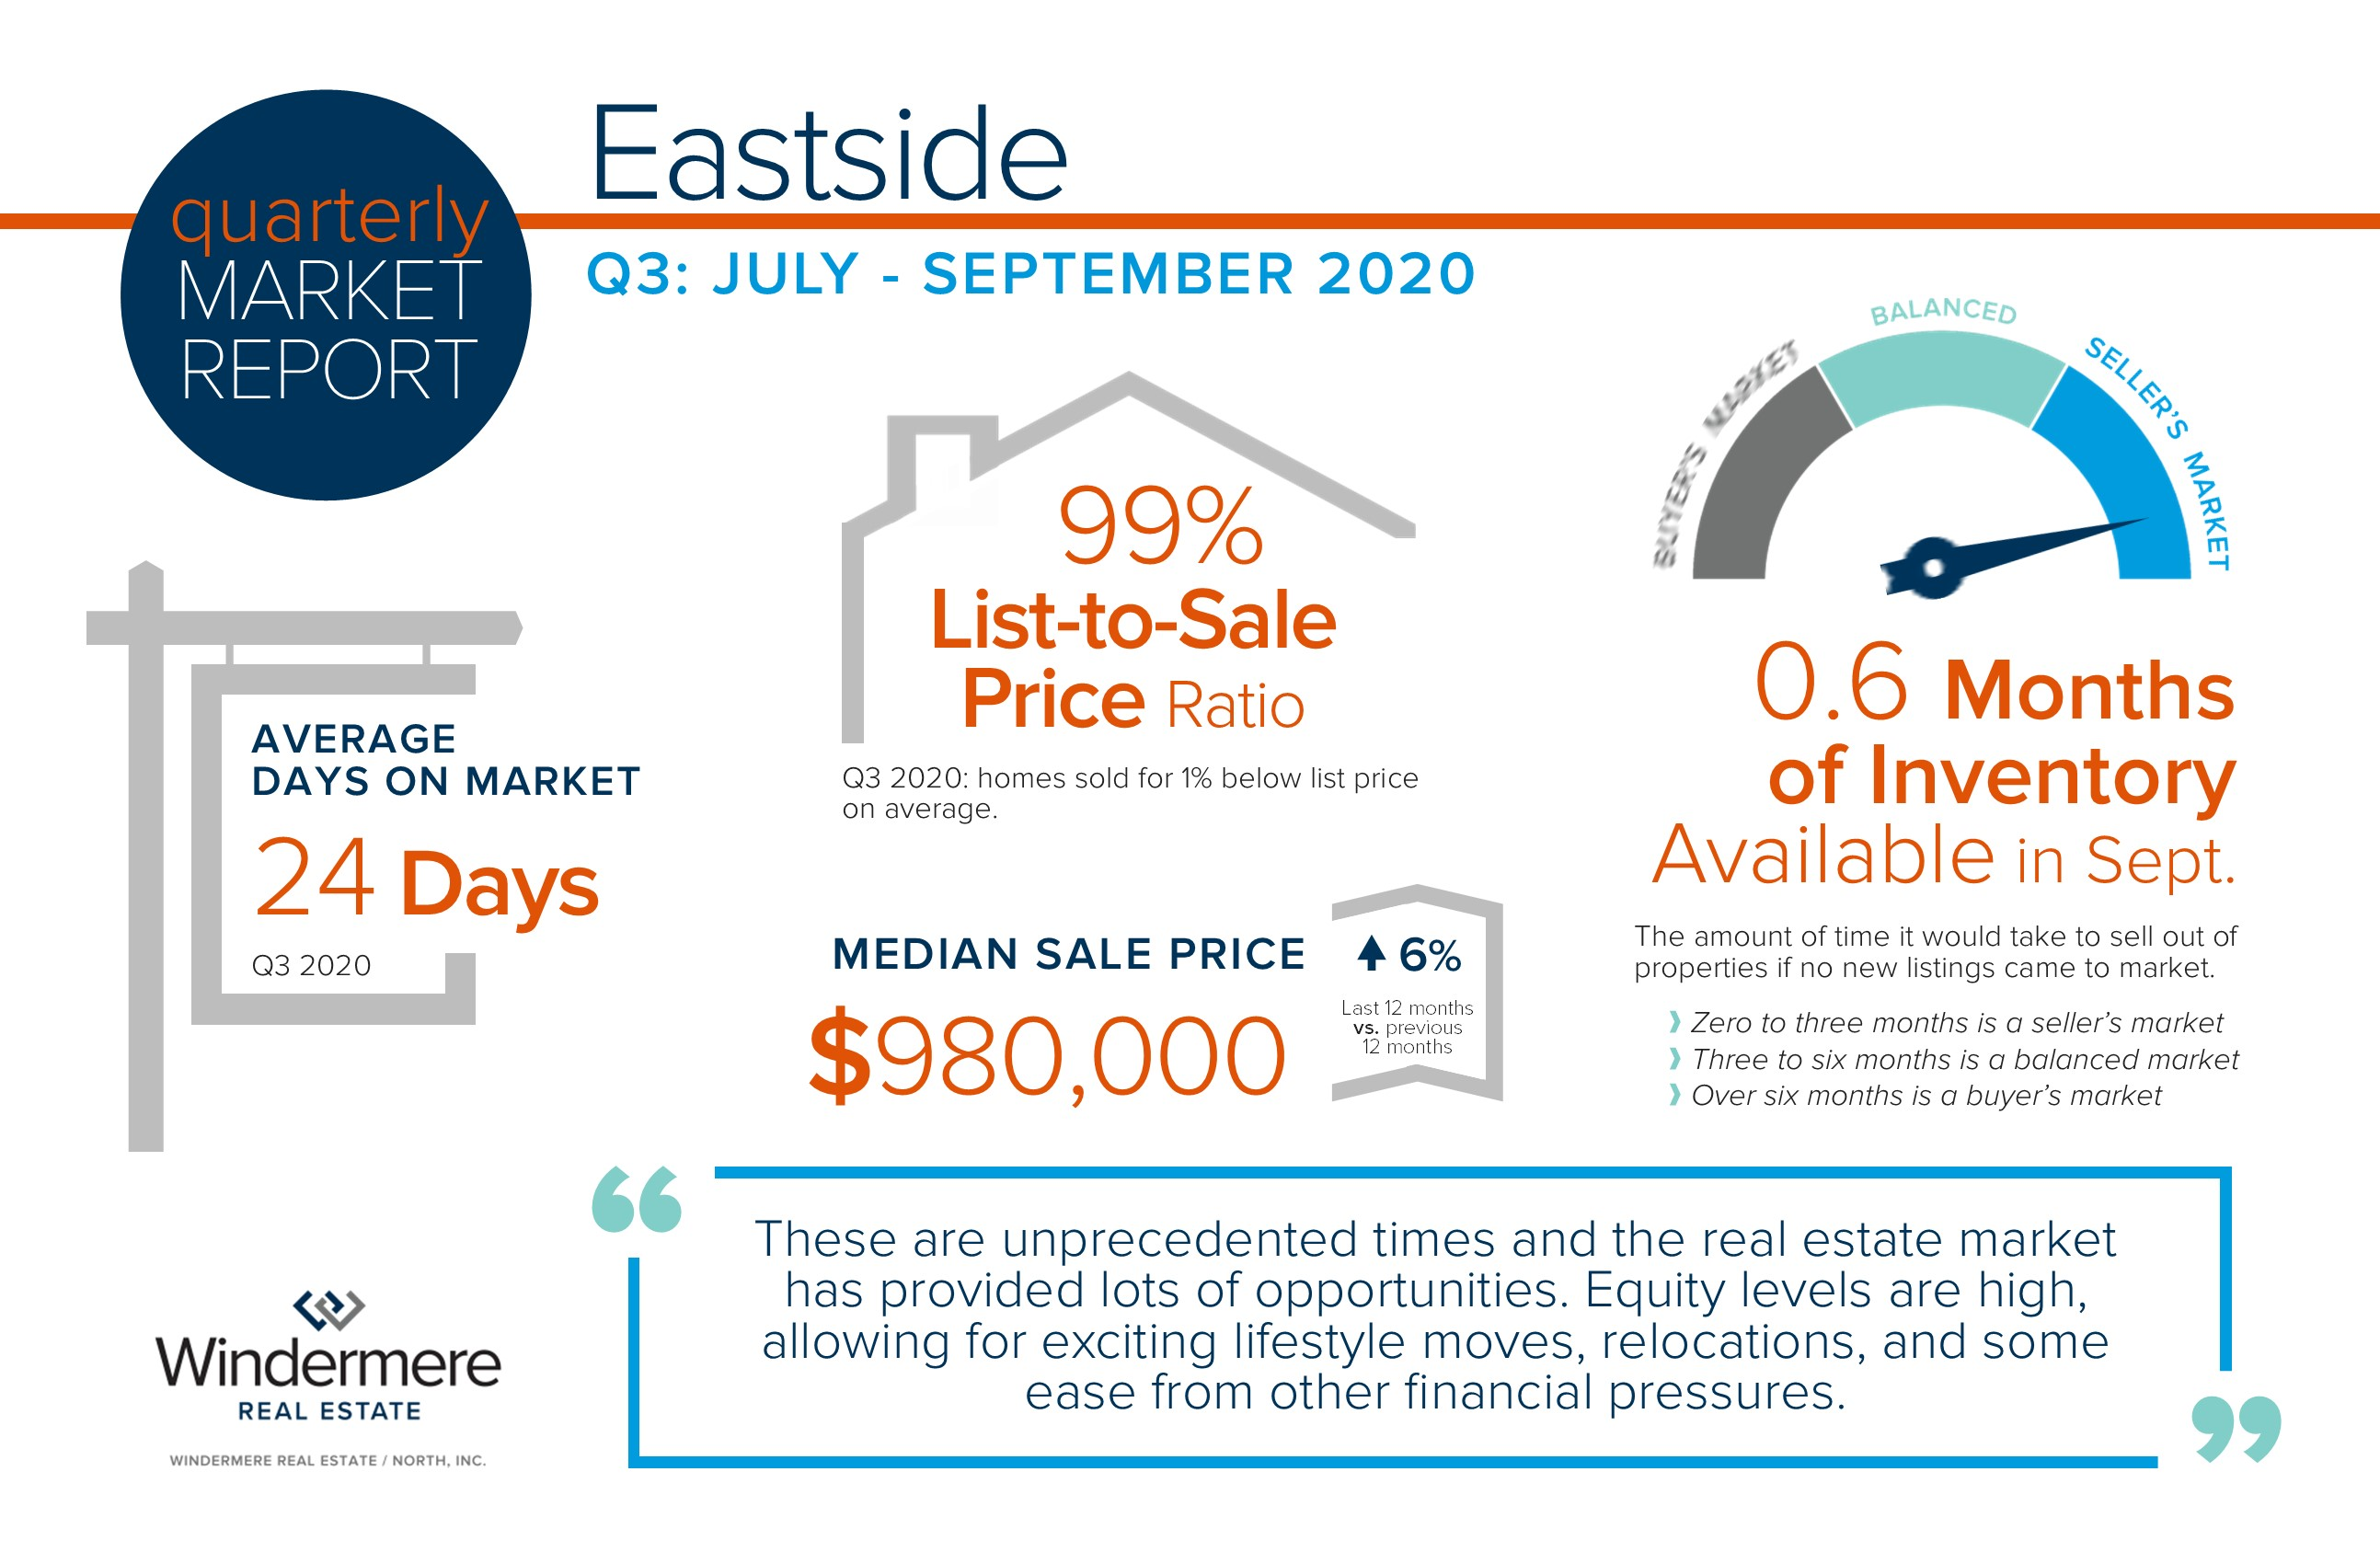 Eastside Quarterly Market Trends – Q3 2020